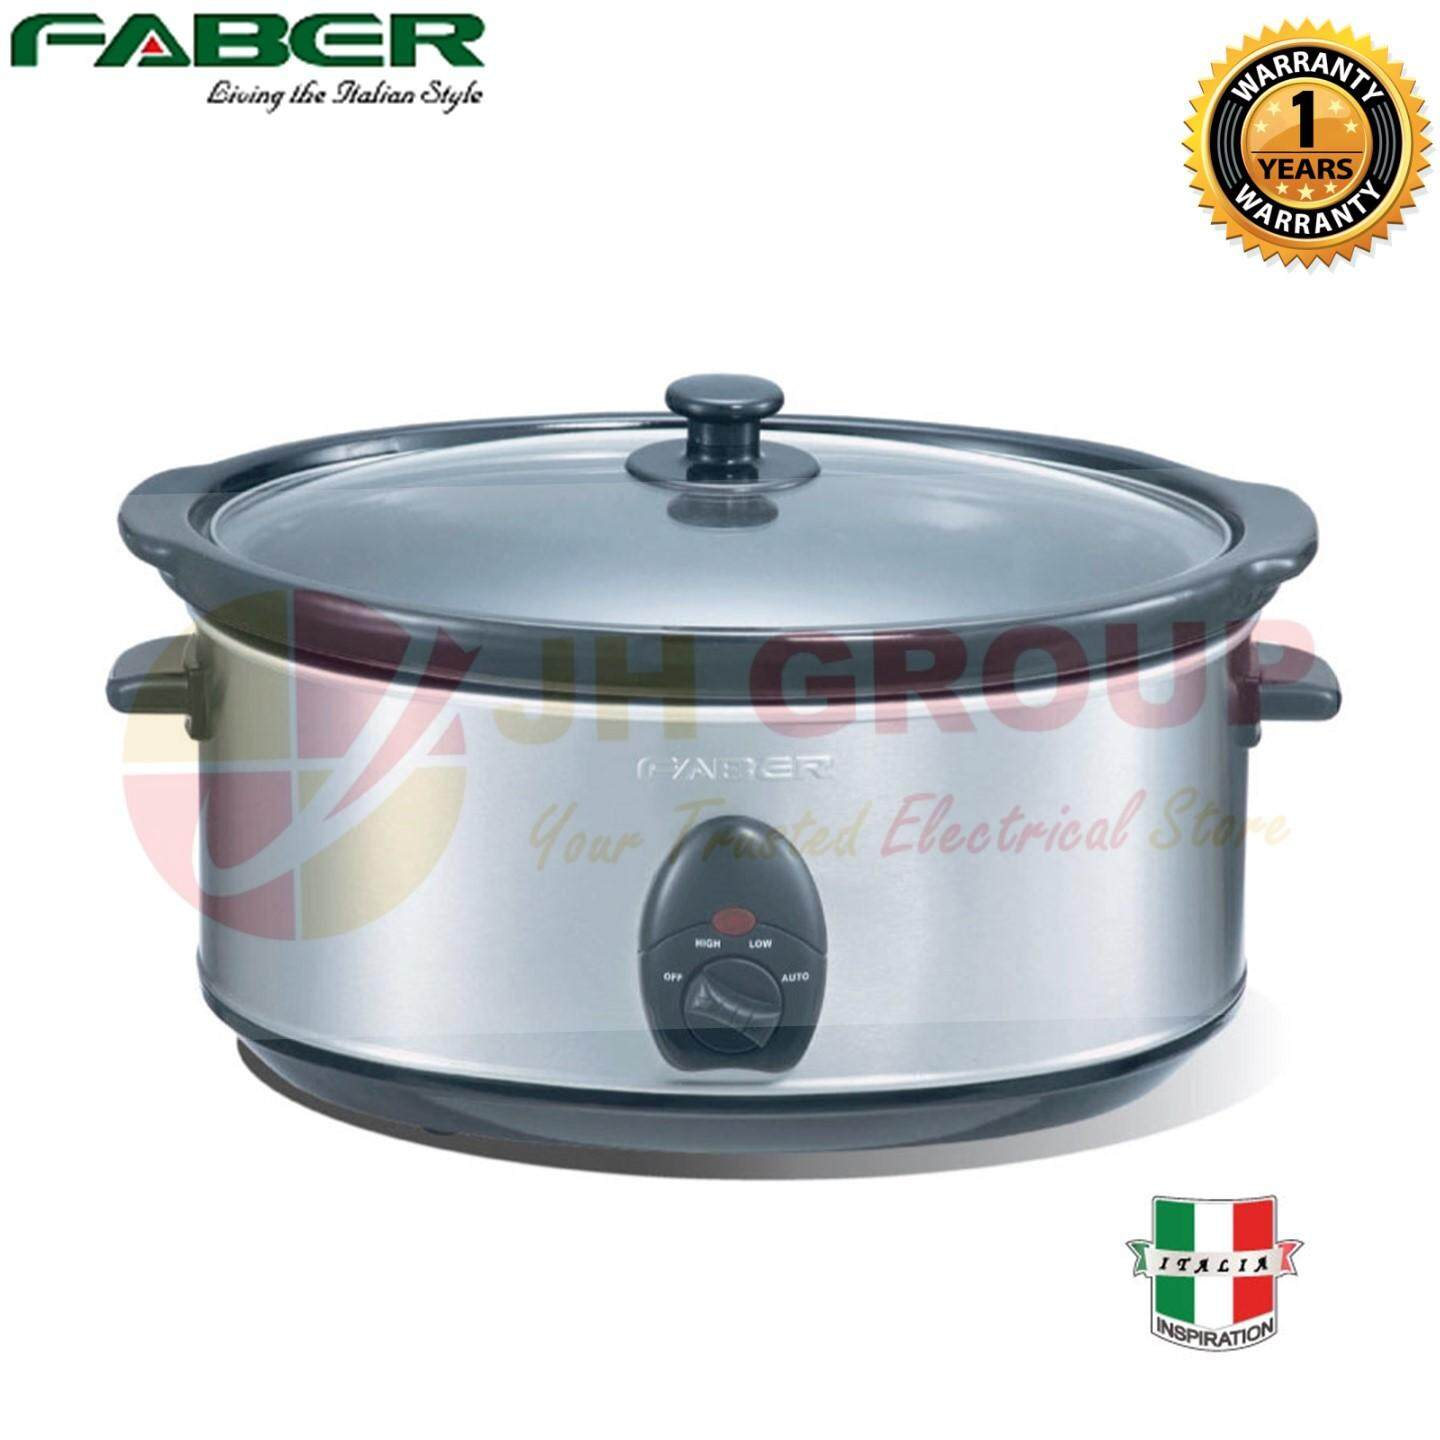 FABER Kitchen Appliances With Best Price At Lazada